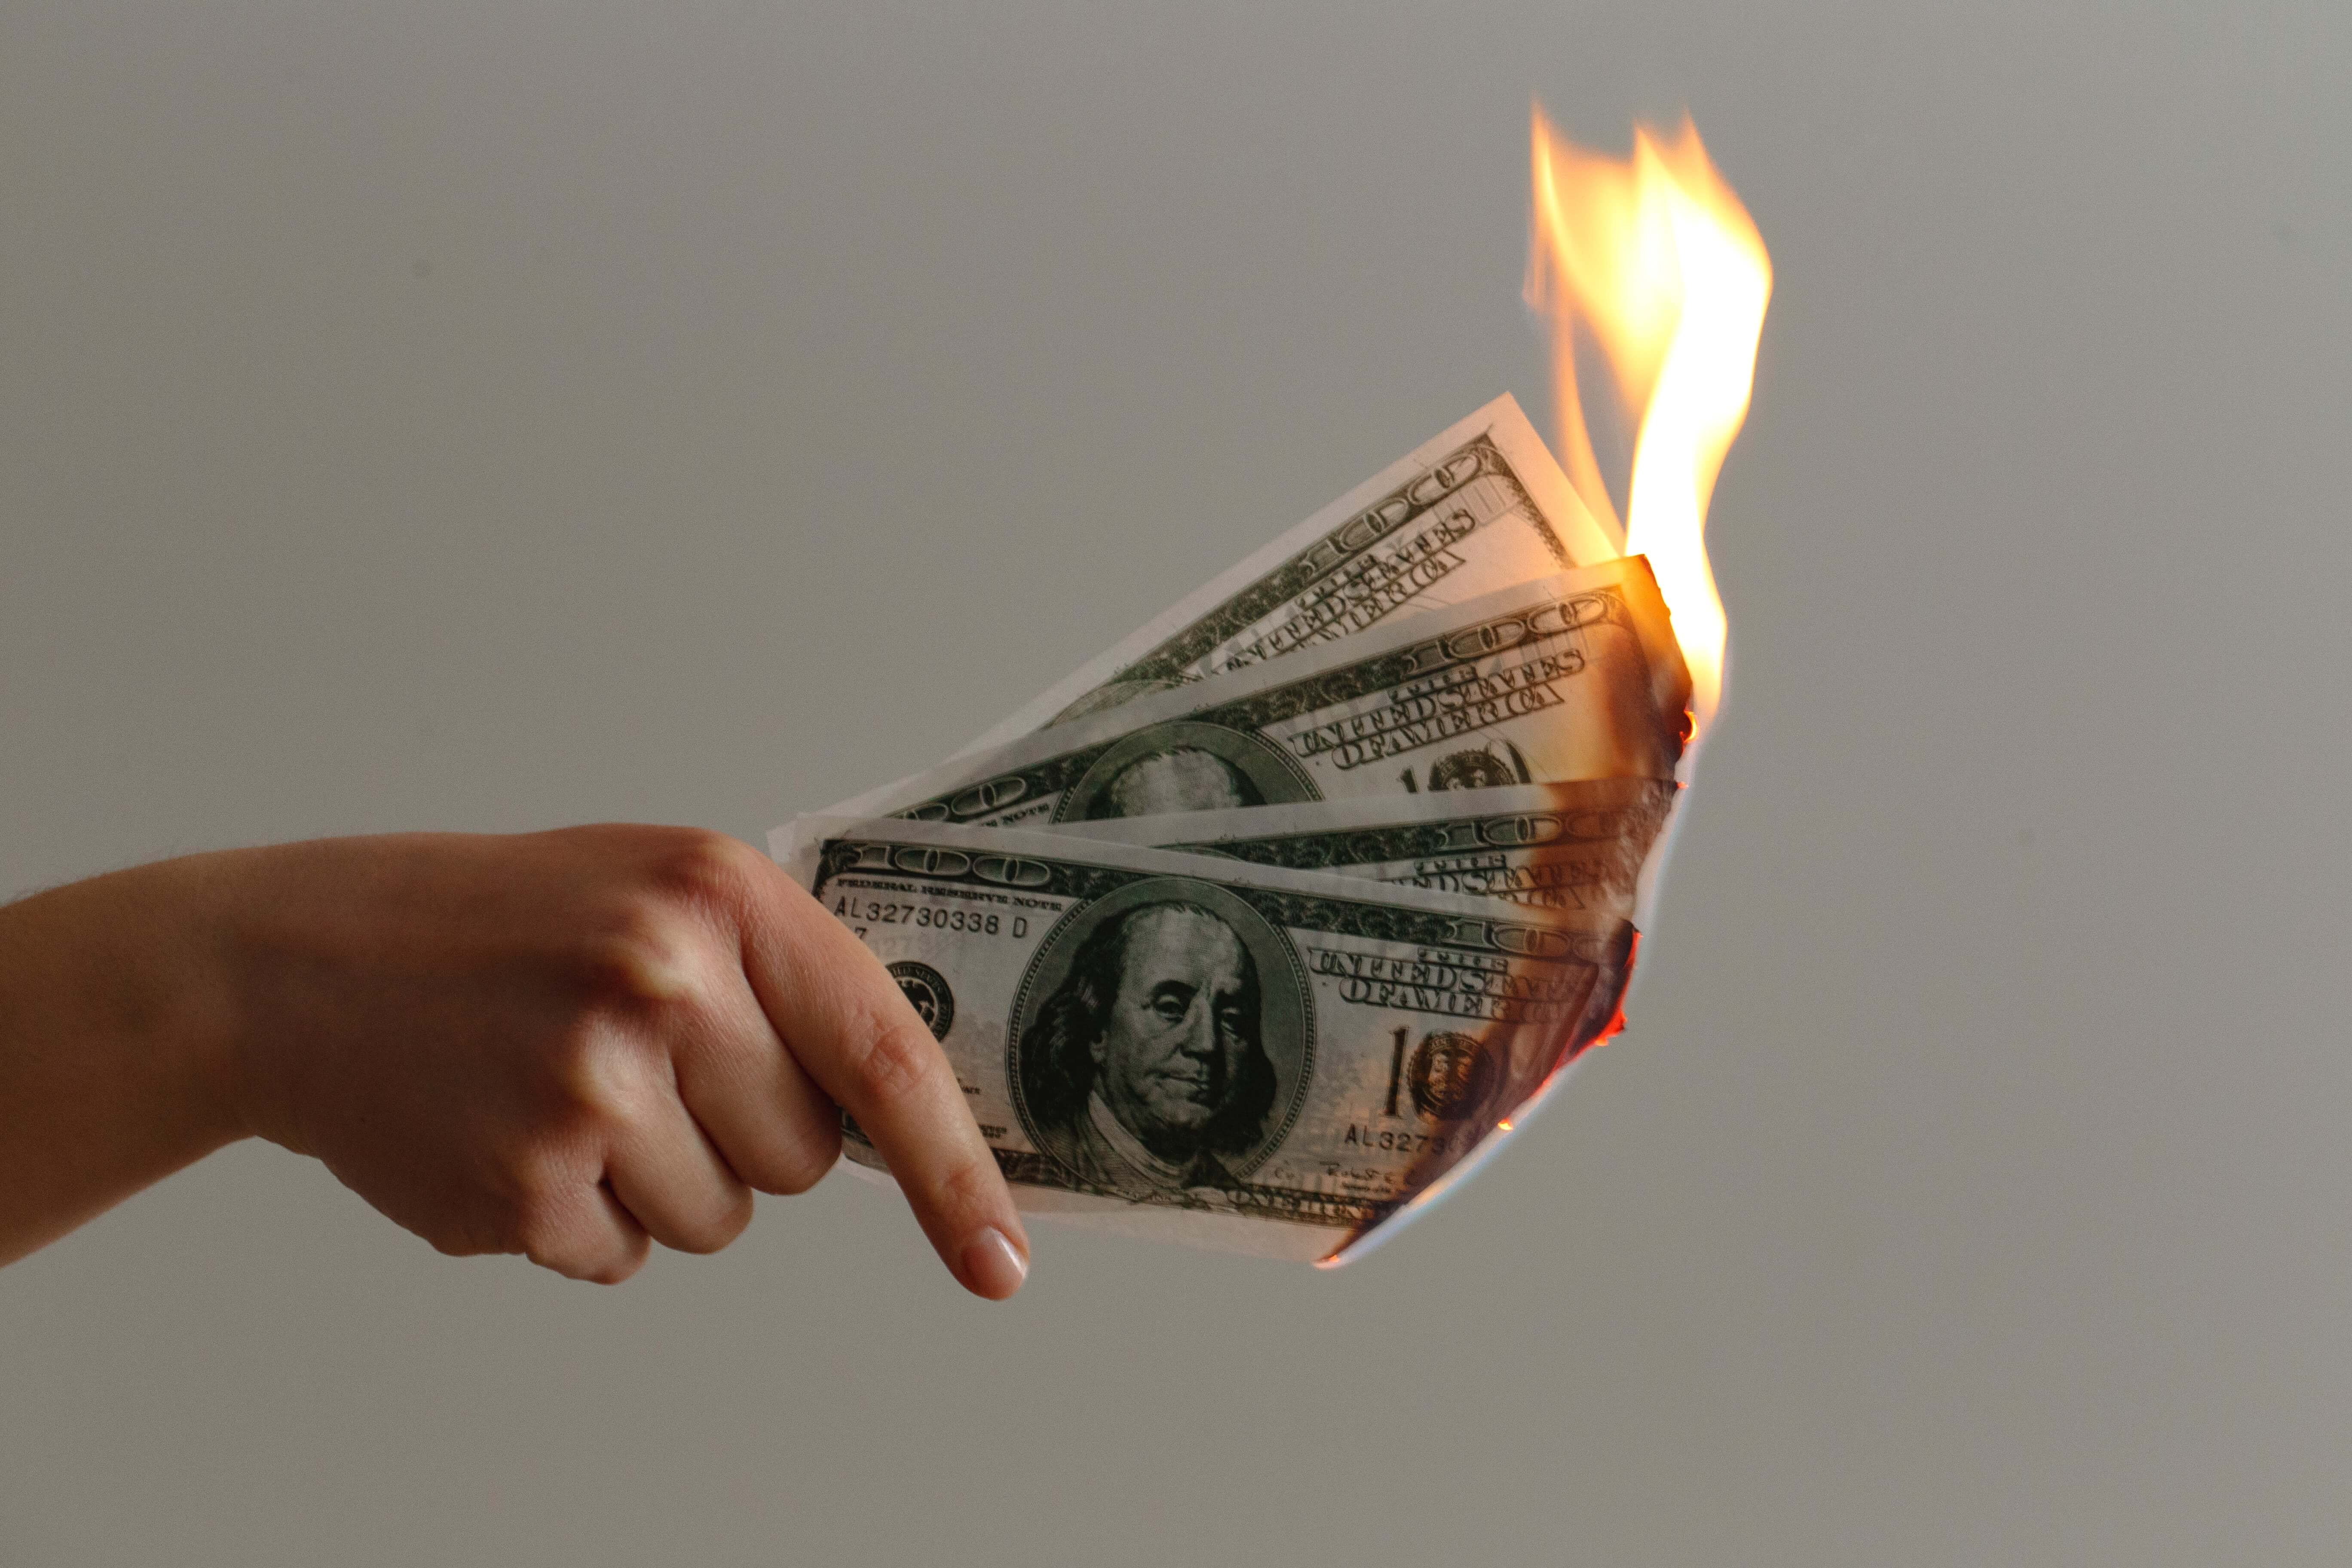 Burning cash money in your hand